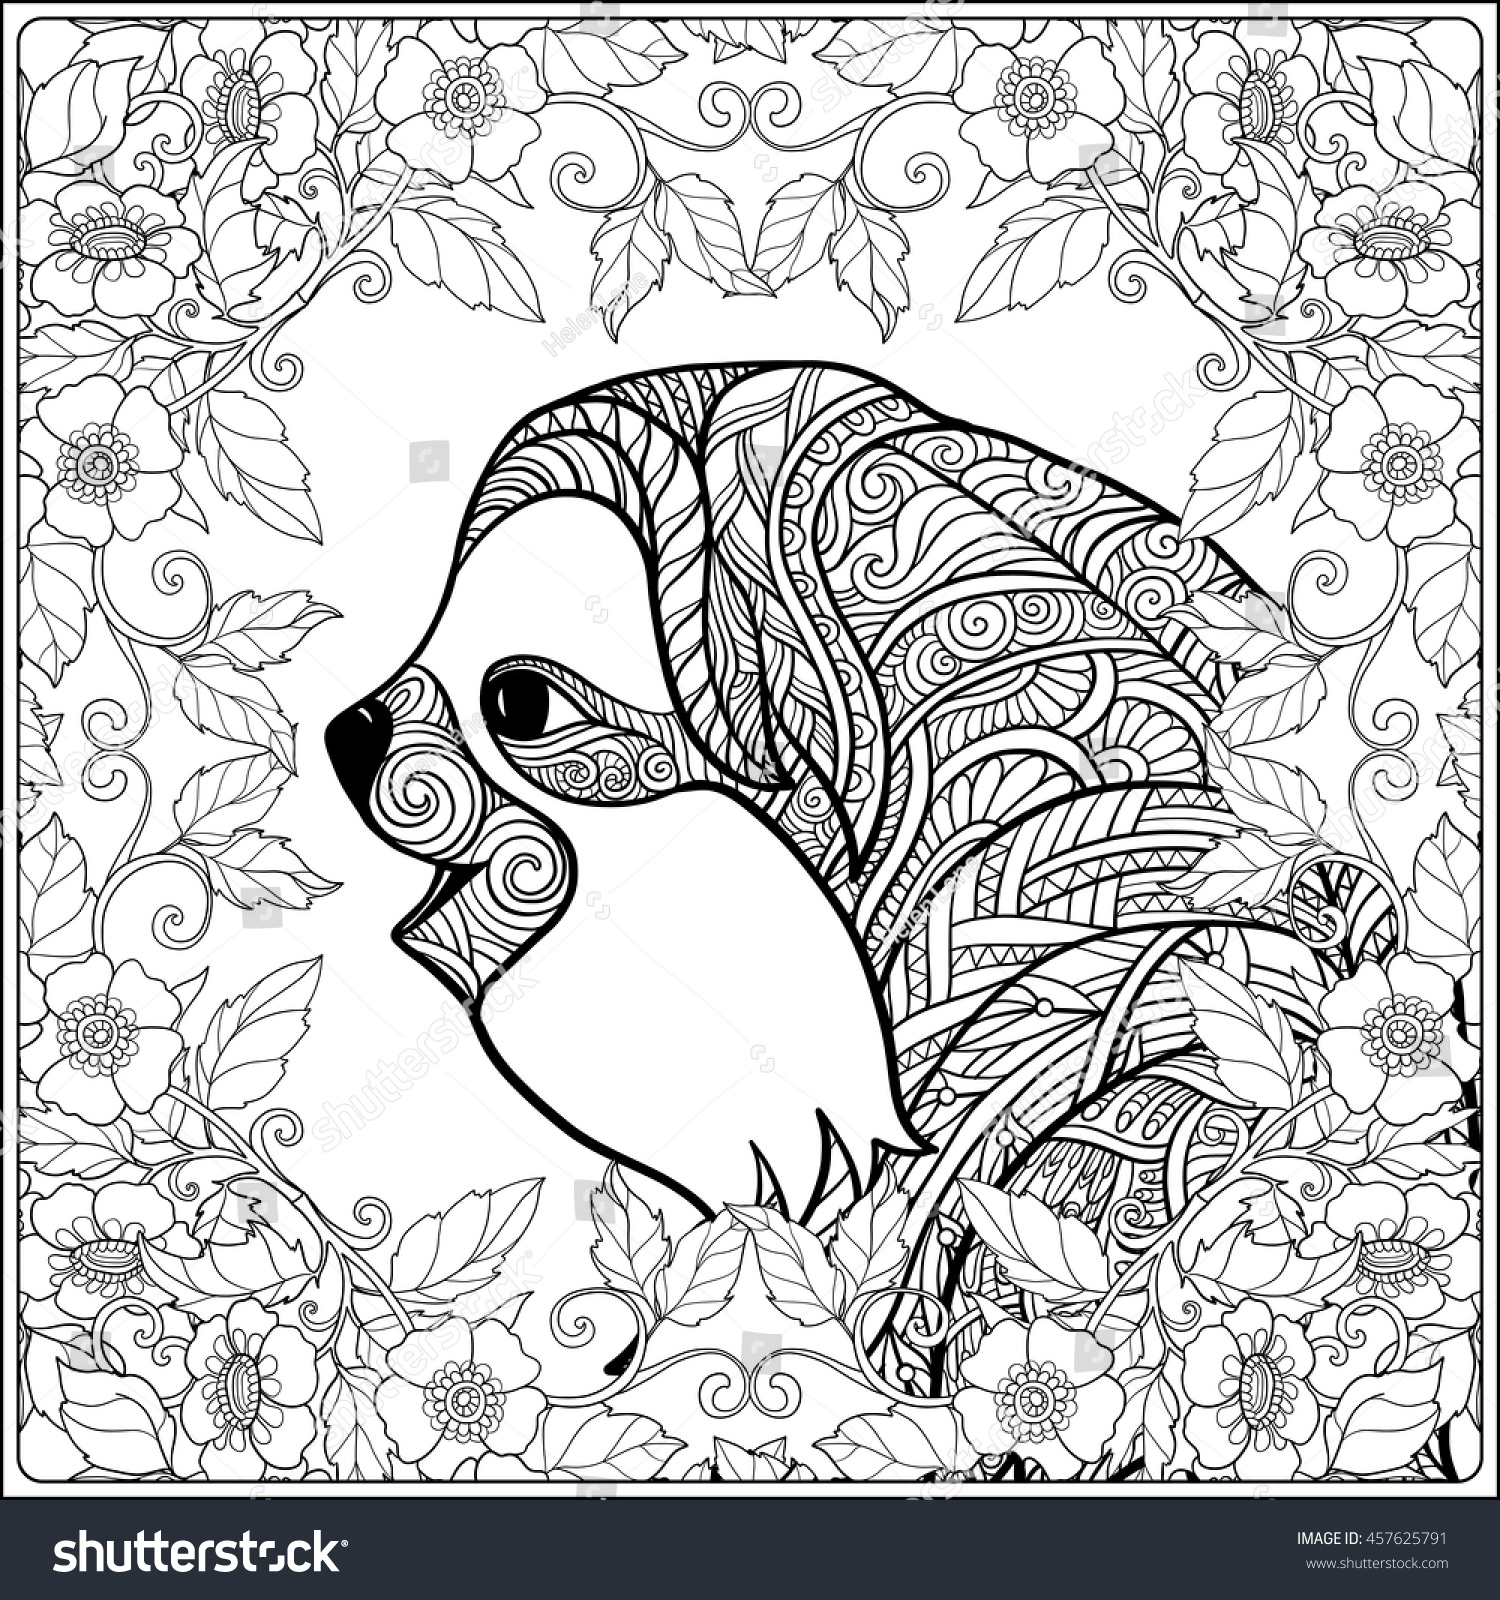 Sloth Coloring Page Coloring Page Lovely Sloth Forest Coloring Stock Vector 457625791